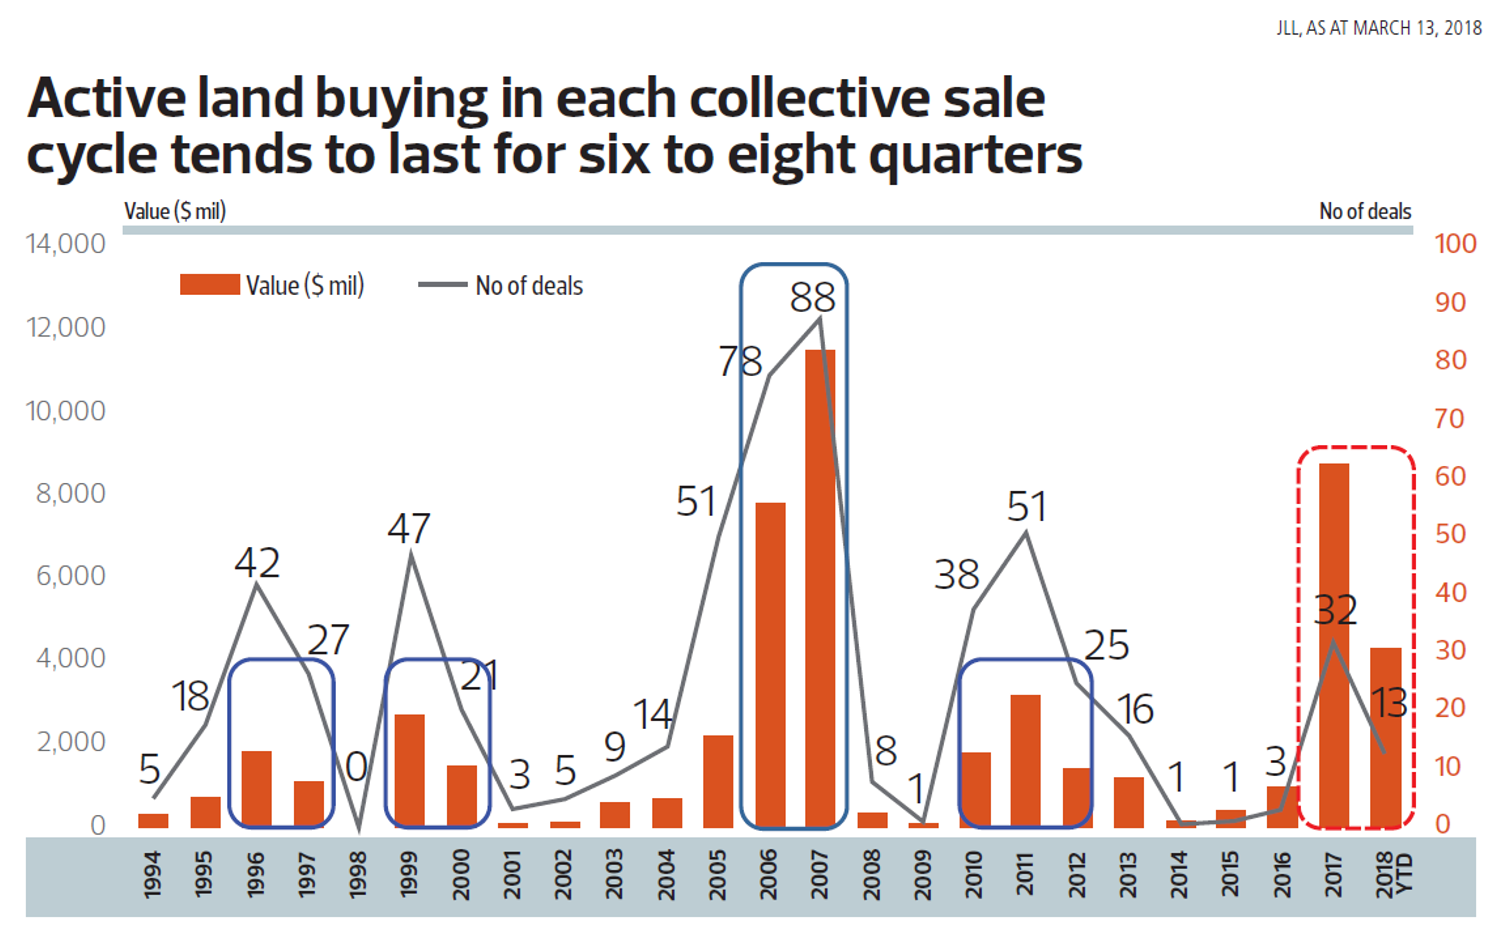 Singapore collective sales transaction trend